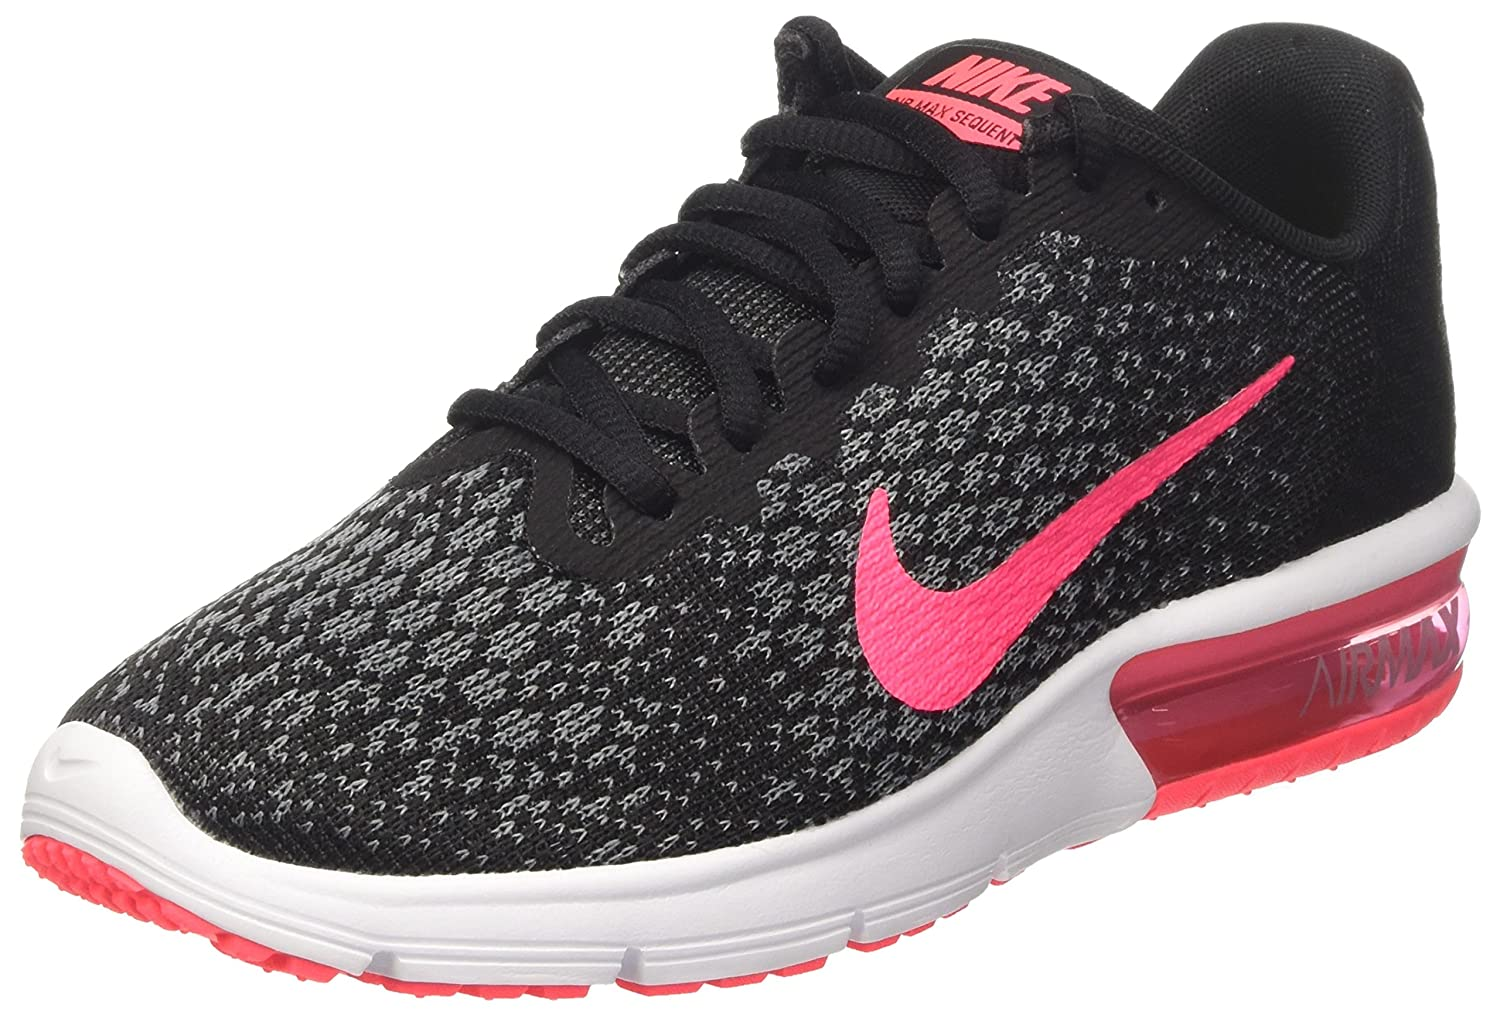 NIKE Men's Air Max B01K2LVF50 Sequent 2 Running Shoe B01K2LVF50 Max 7 B(M) US|Black/Racer Pink/Anthracite/Cool Grey ca6cb3